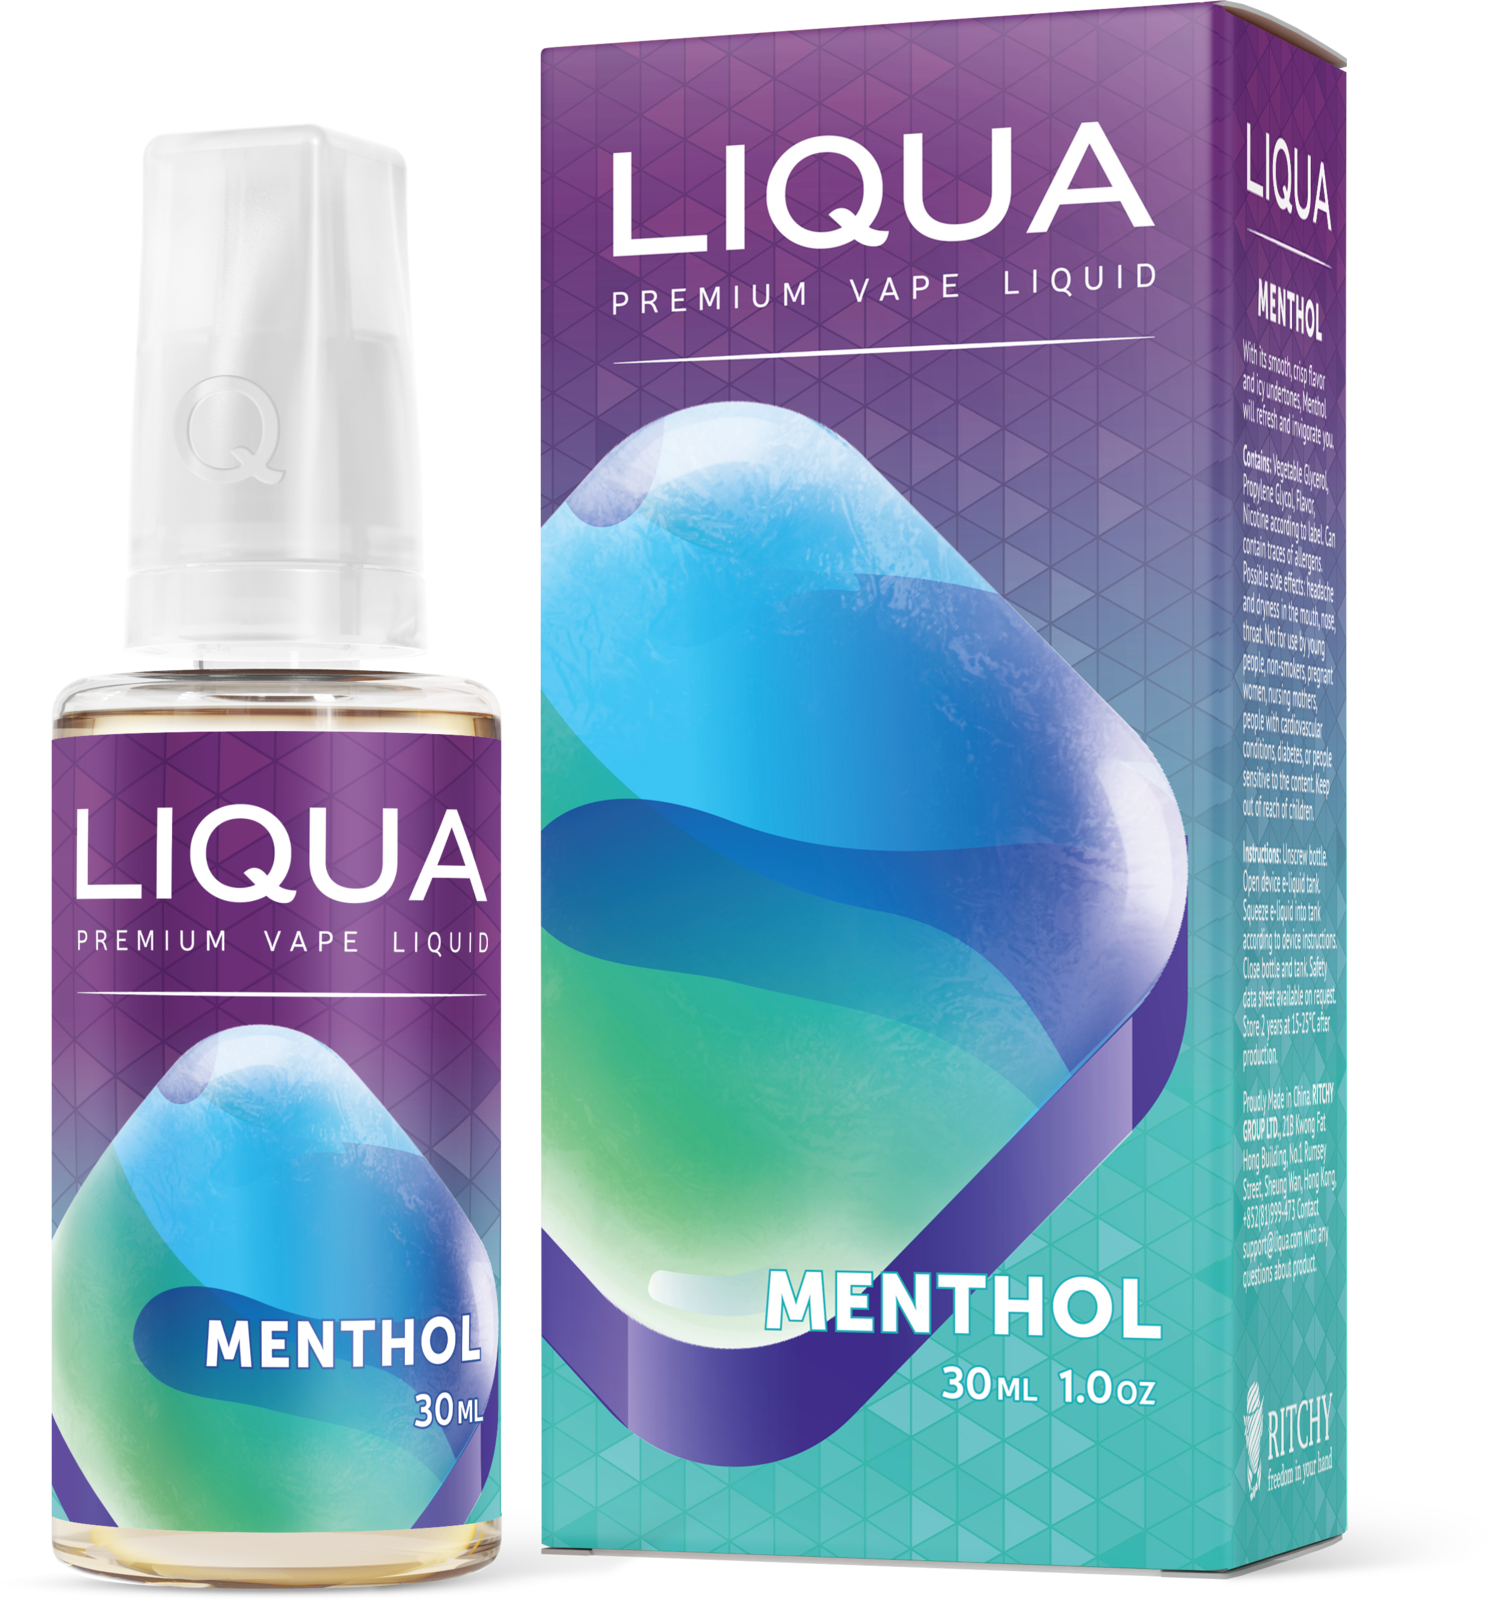 Liqua Elements Menthol 30ml PG+VG 0mg